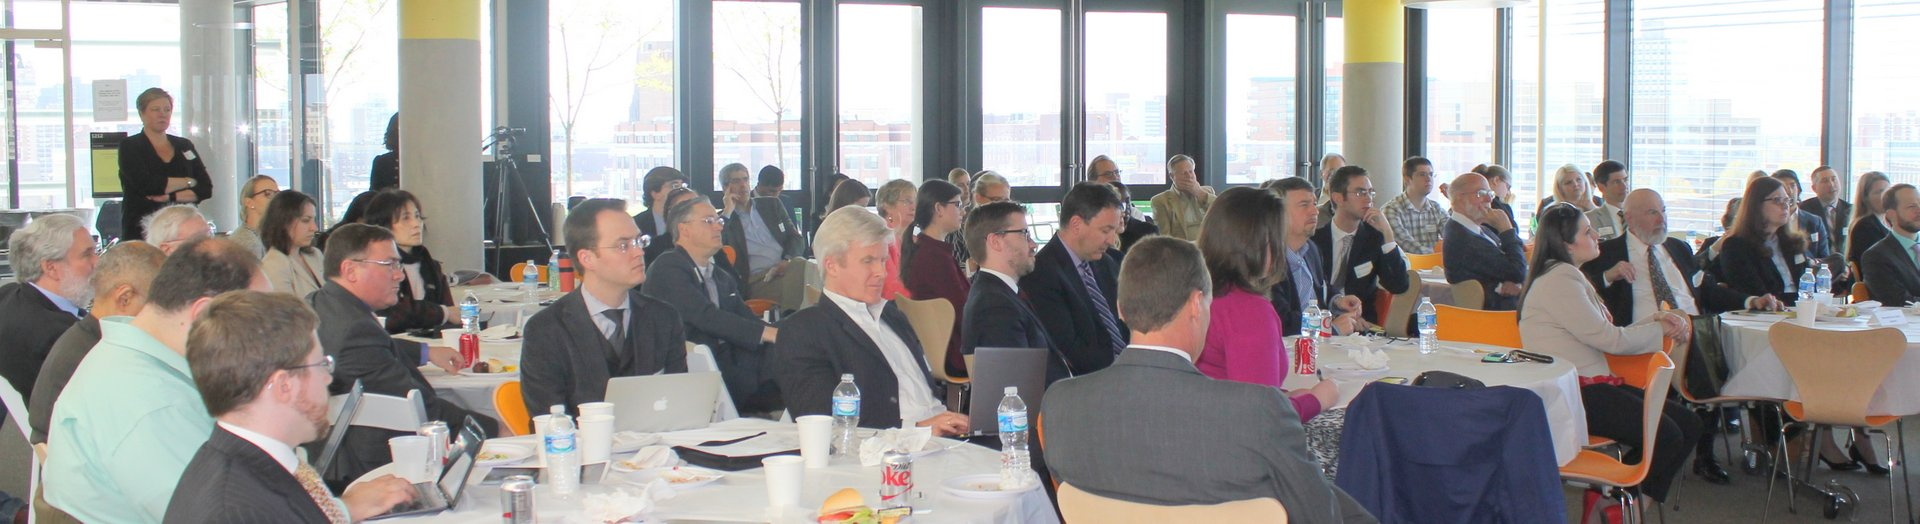 Copyright Conference Audience 1